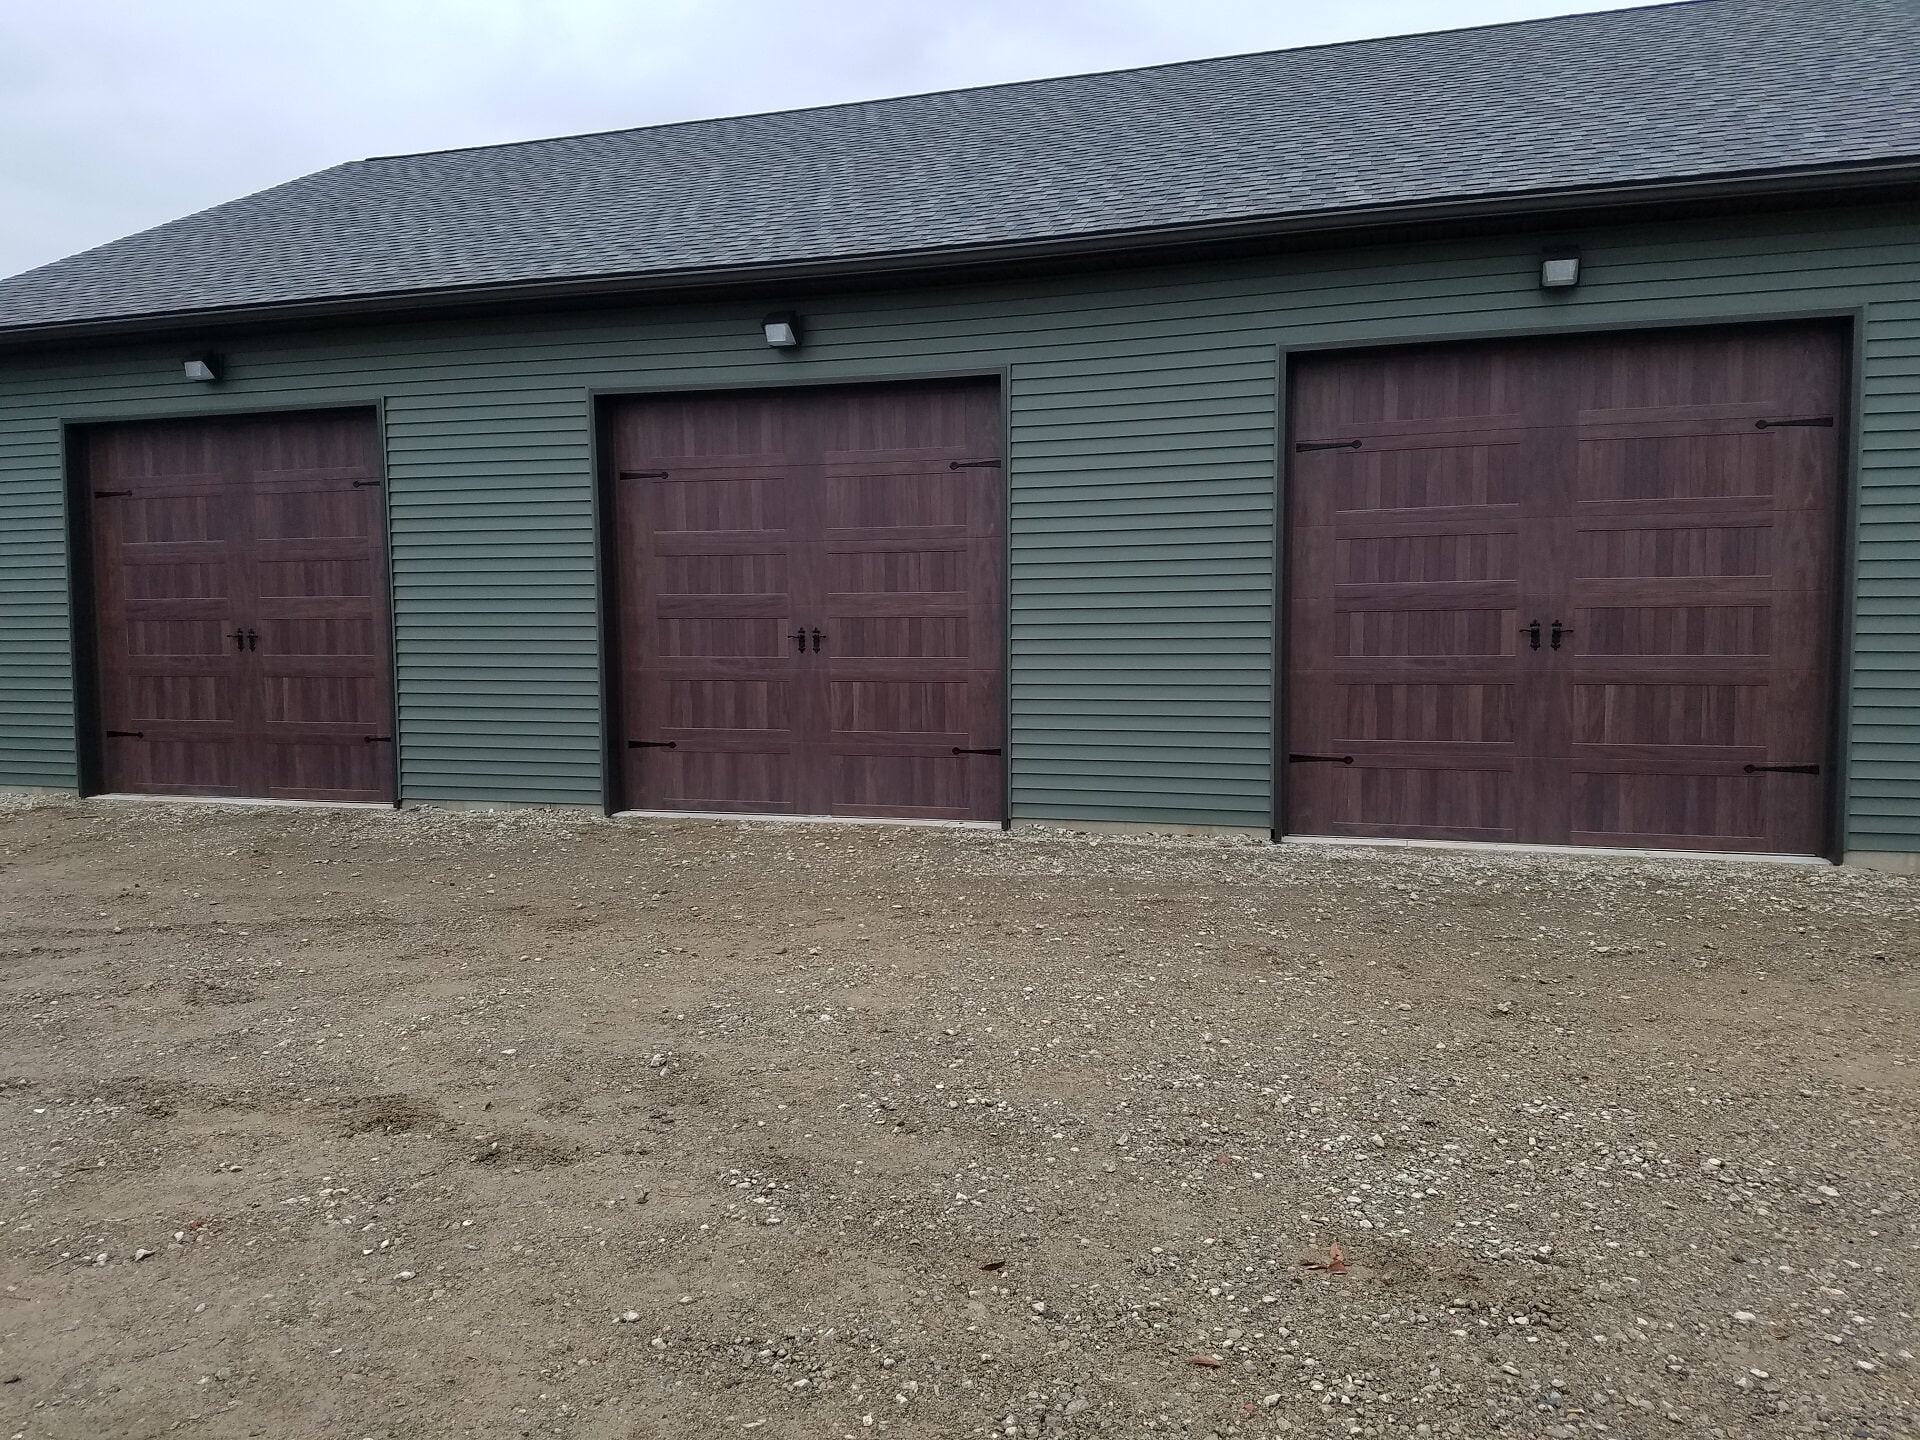 Wood Garage Doors - Garage Door Repair in Fenton MI & Gallery | Fenton MI | K u0026 H Garage Doors